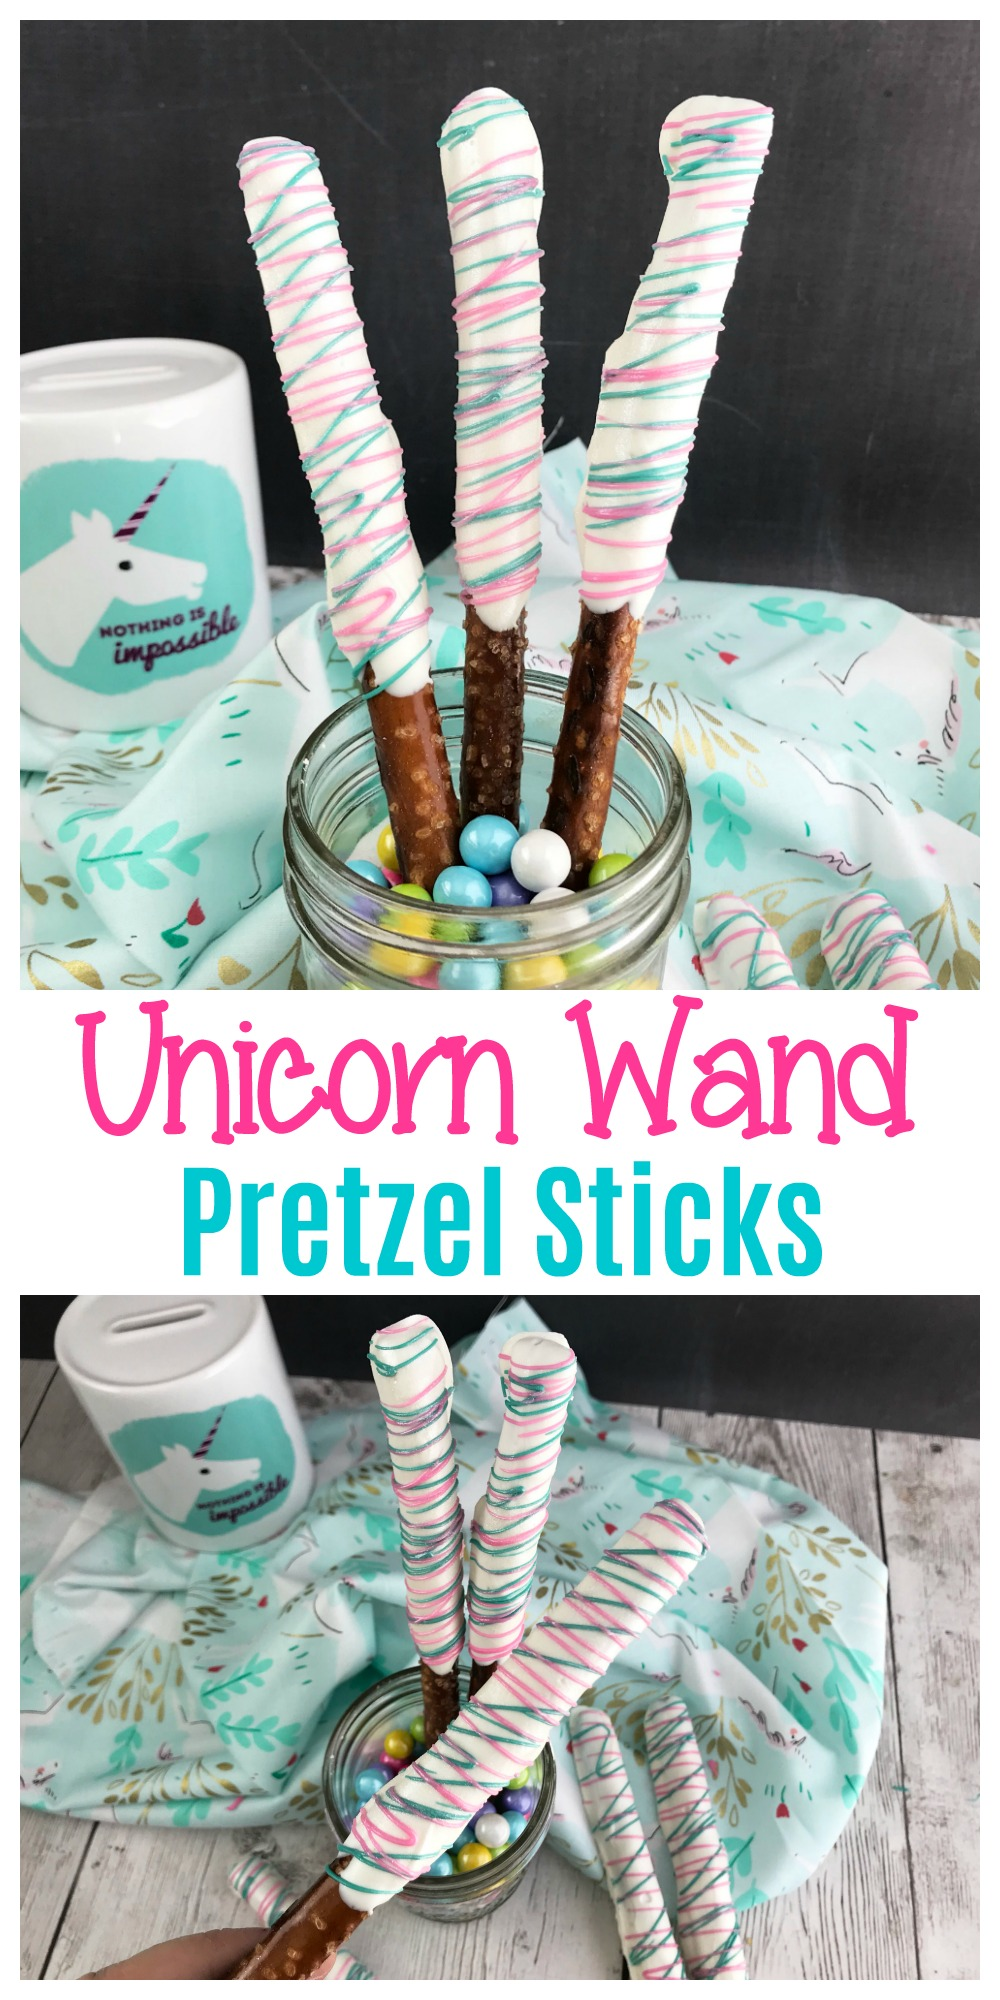 Unicorn Wand Pretzel Sticks are a fun and easy snack that everyone can enjoy. There's just something about that mix of sweet and salty that everyone loves.